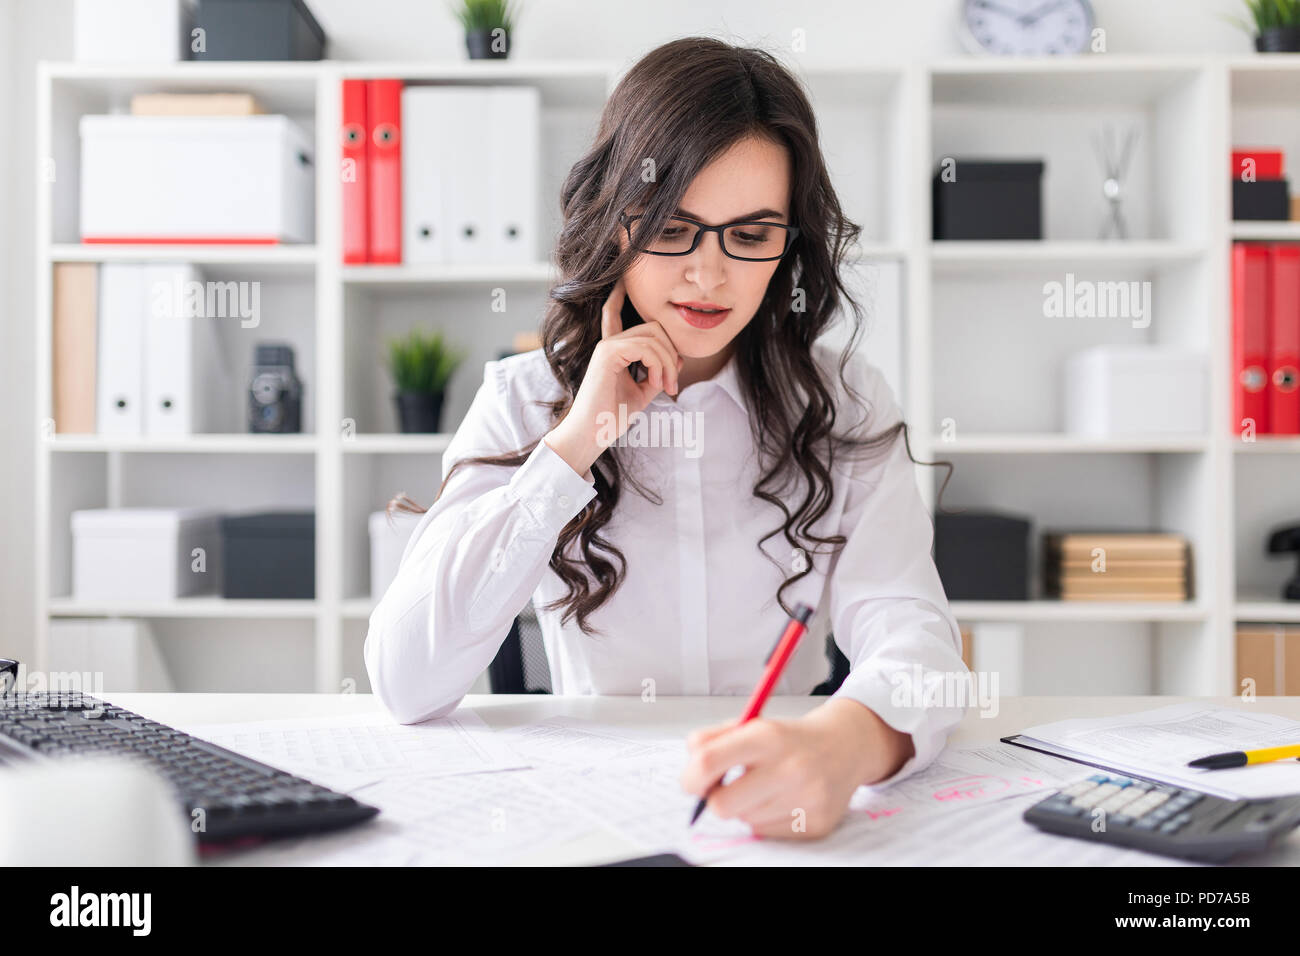 Young girl sits at office desk and fills documents with her left hand. - Stock Image